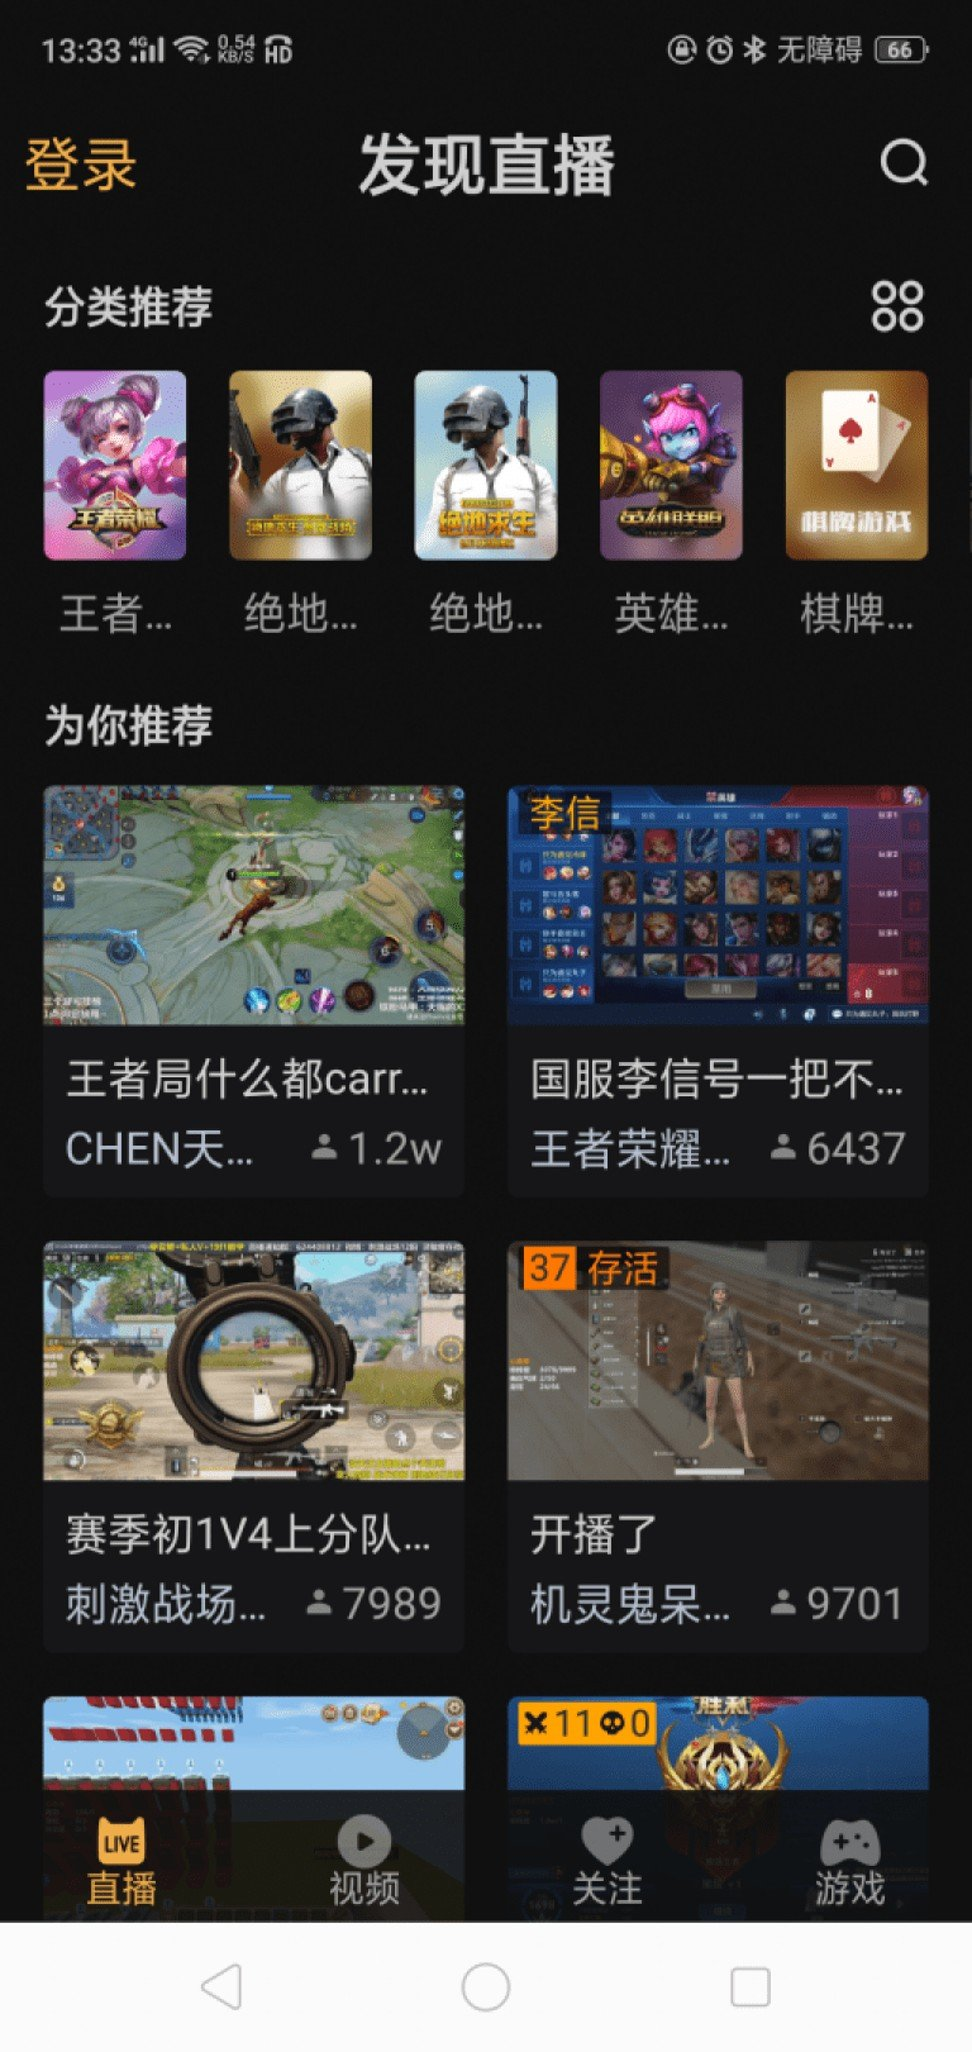 Tencent Holdings-backed start-up Kuaishou estimates it now has 35 million daily active users on its Twitch-like video game live-streaming service. Photo: Handout